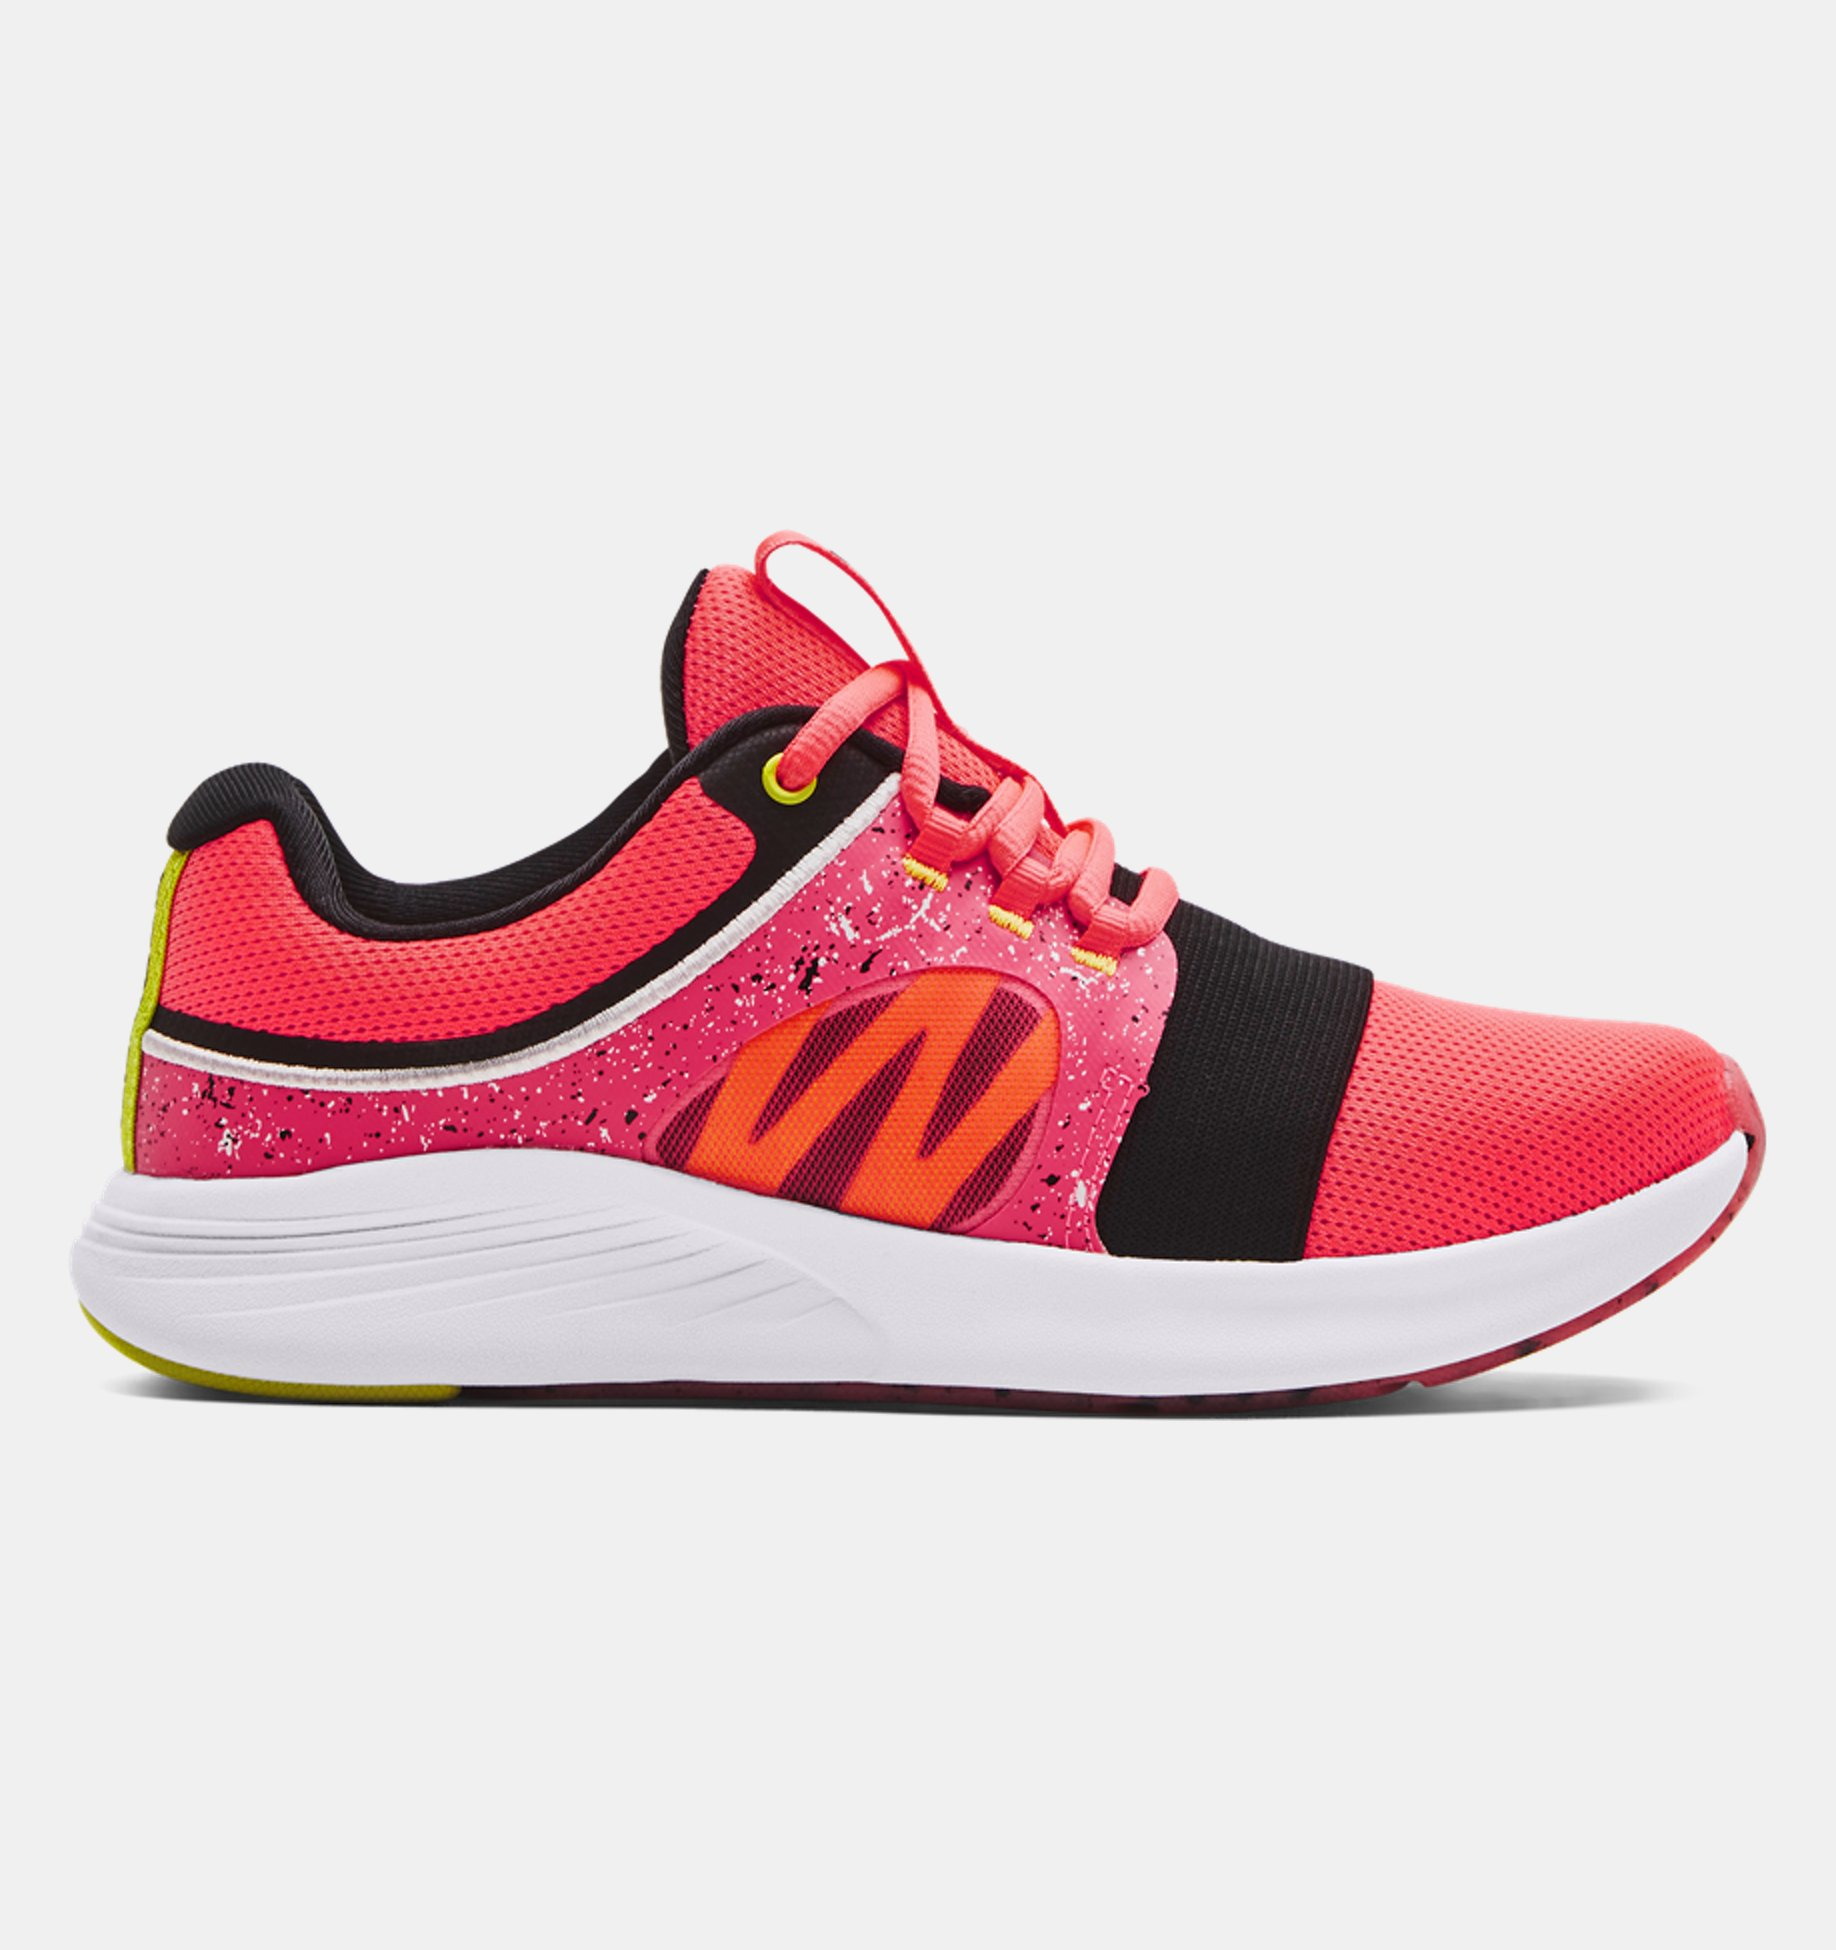 Underarmour Womens UA Charged Breathe Bliss PS Sportstyle Shoes